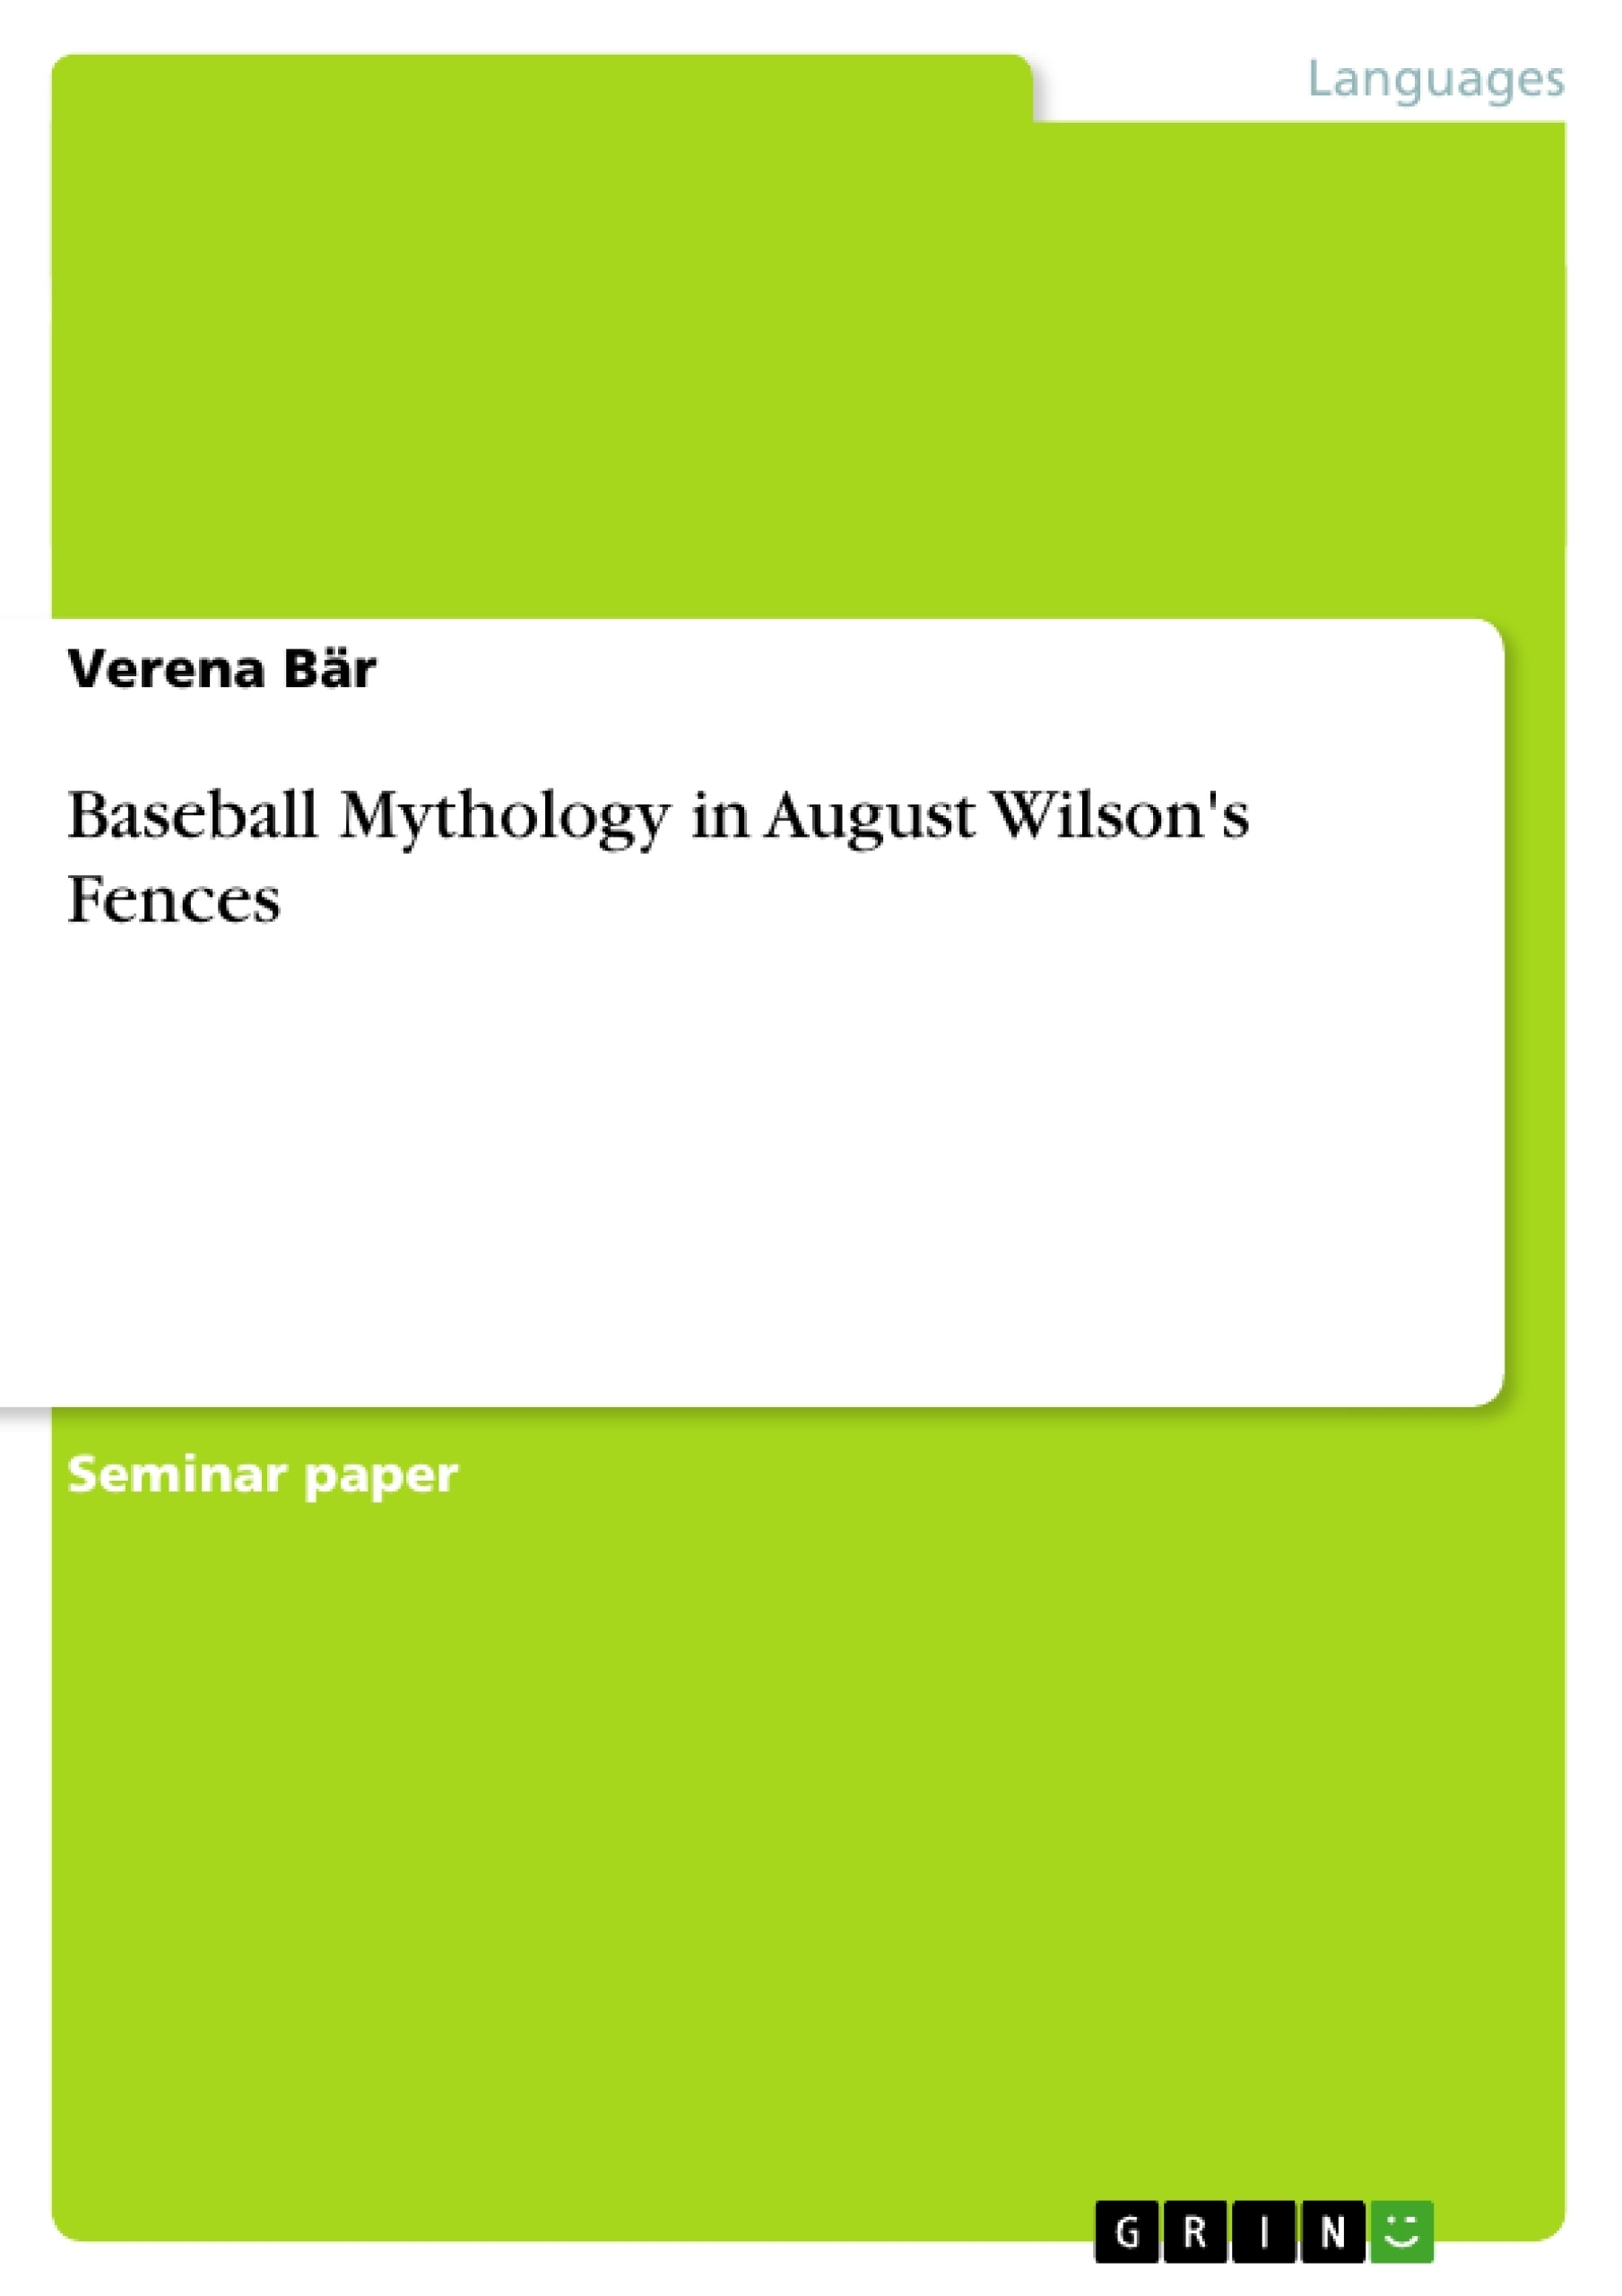 baseball mythology in wilson s fences publish your  baseball mythology in wilson s fences publish your master s thesis bachelor s thesis essay or term paper